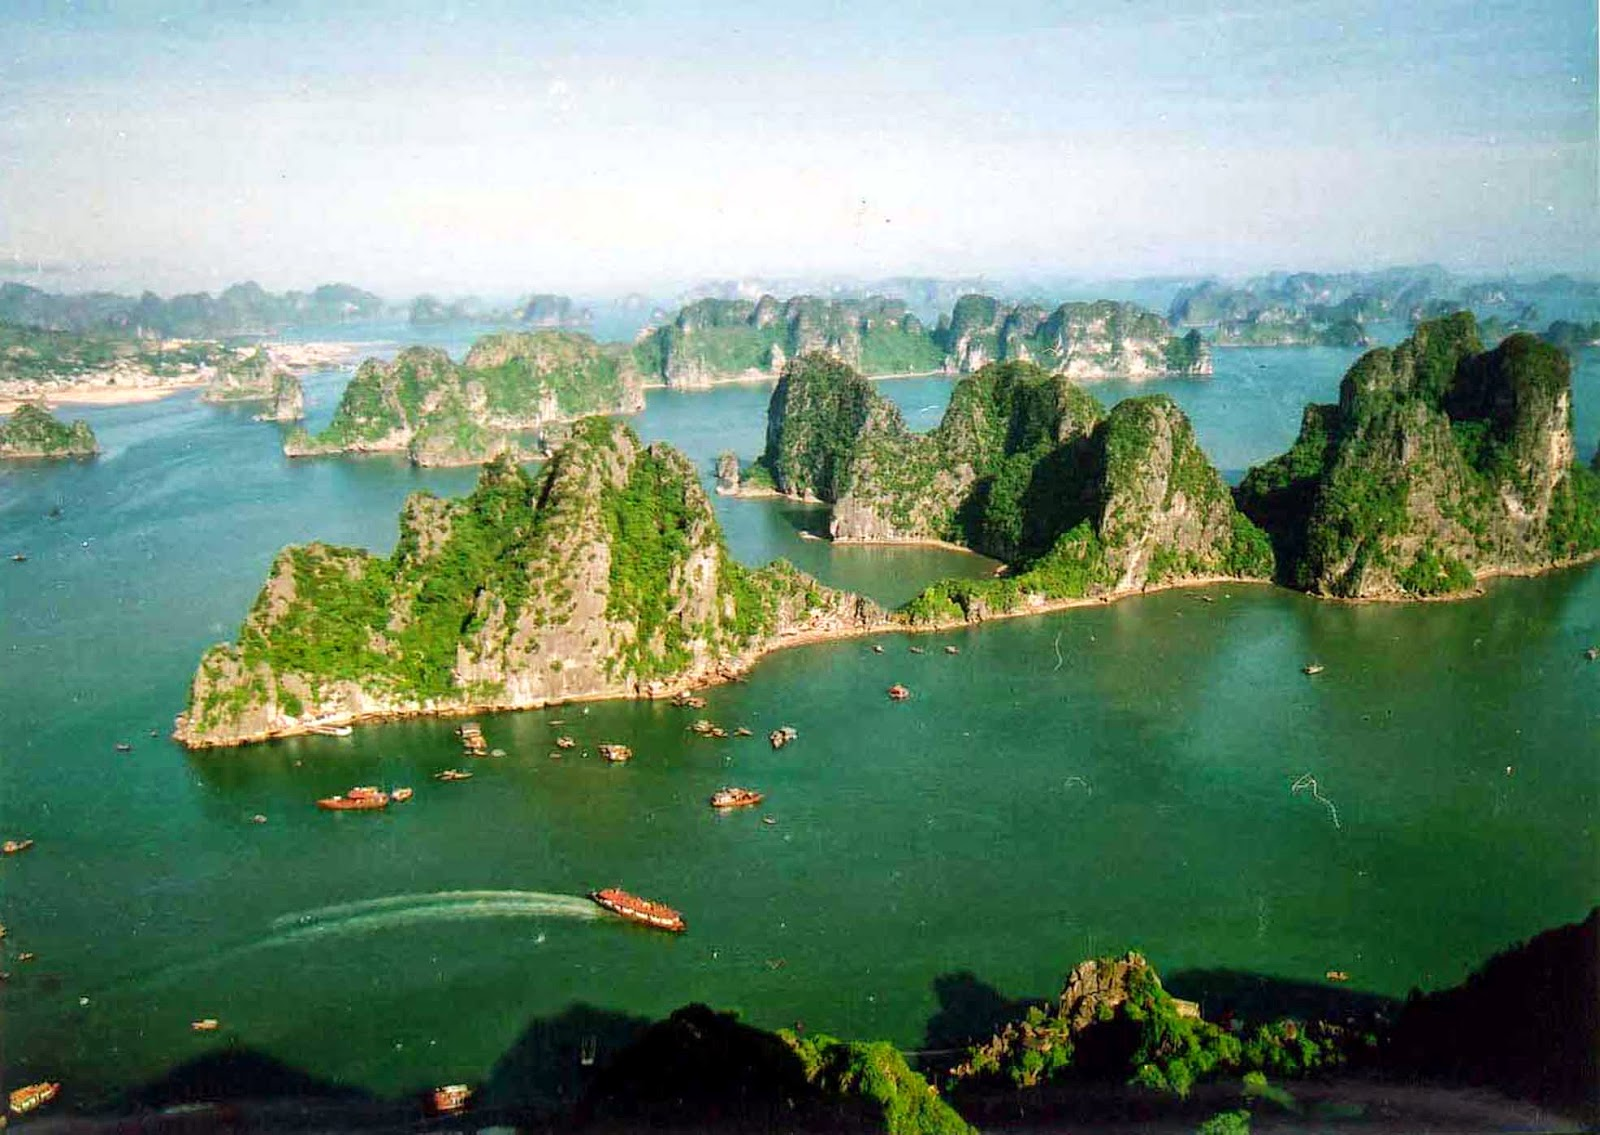 describe ha long bay Book your tickets online for the top things to do in halong bay, vietnam on tripadvisor: see 42,357 traveler reviews and photos of halong bay tourist attractions.